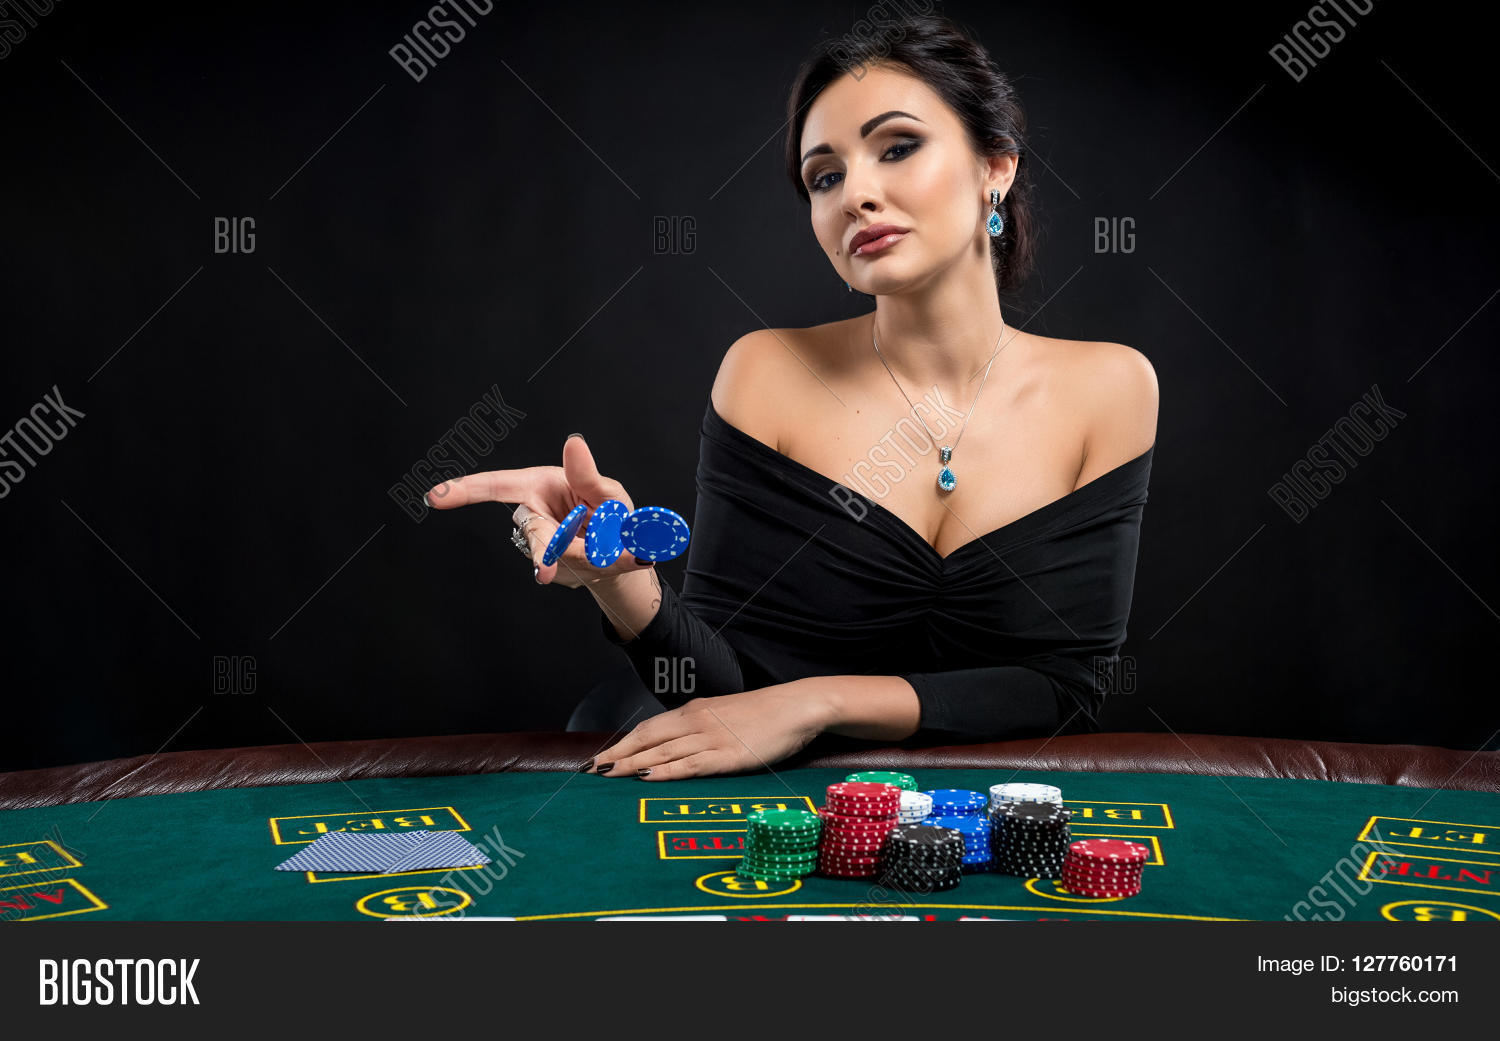 poker trial Sexy